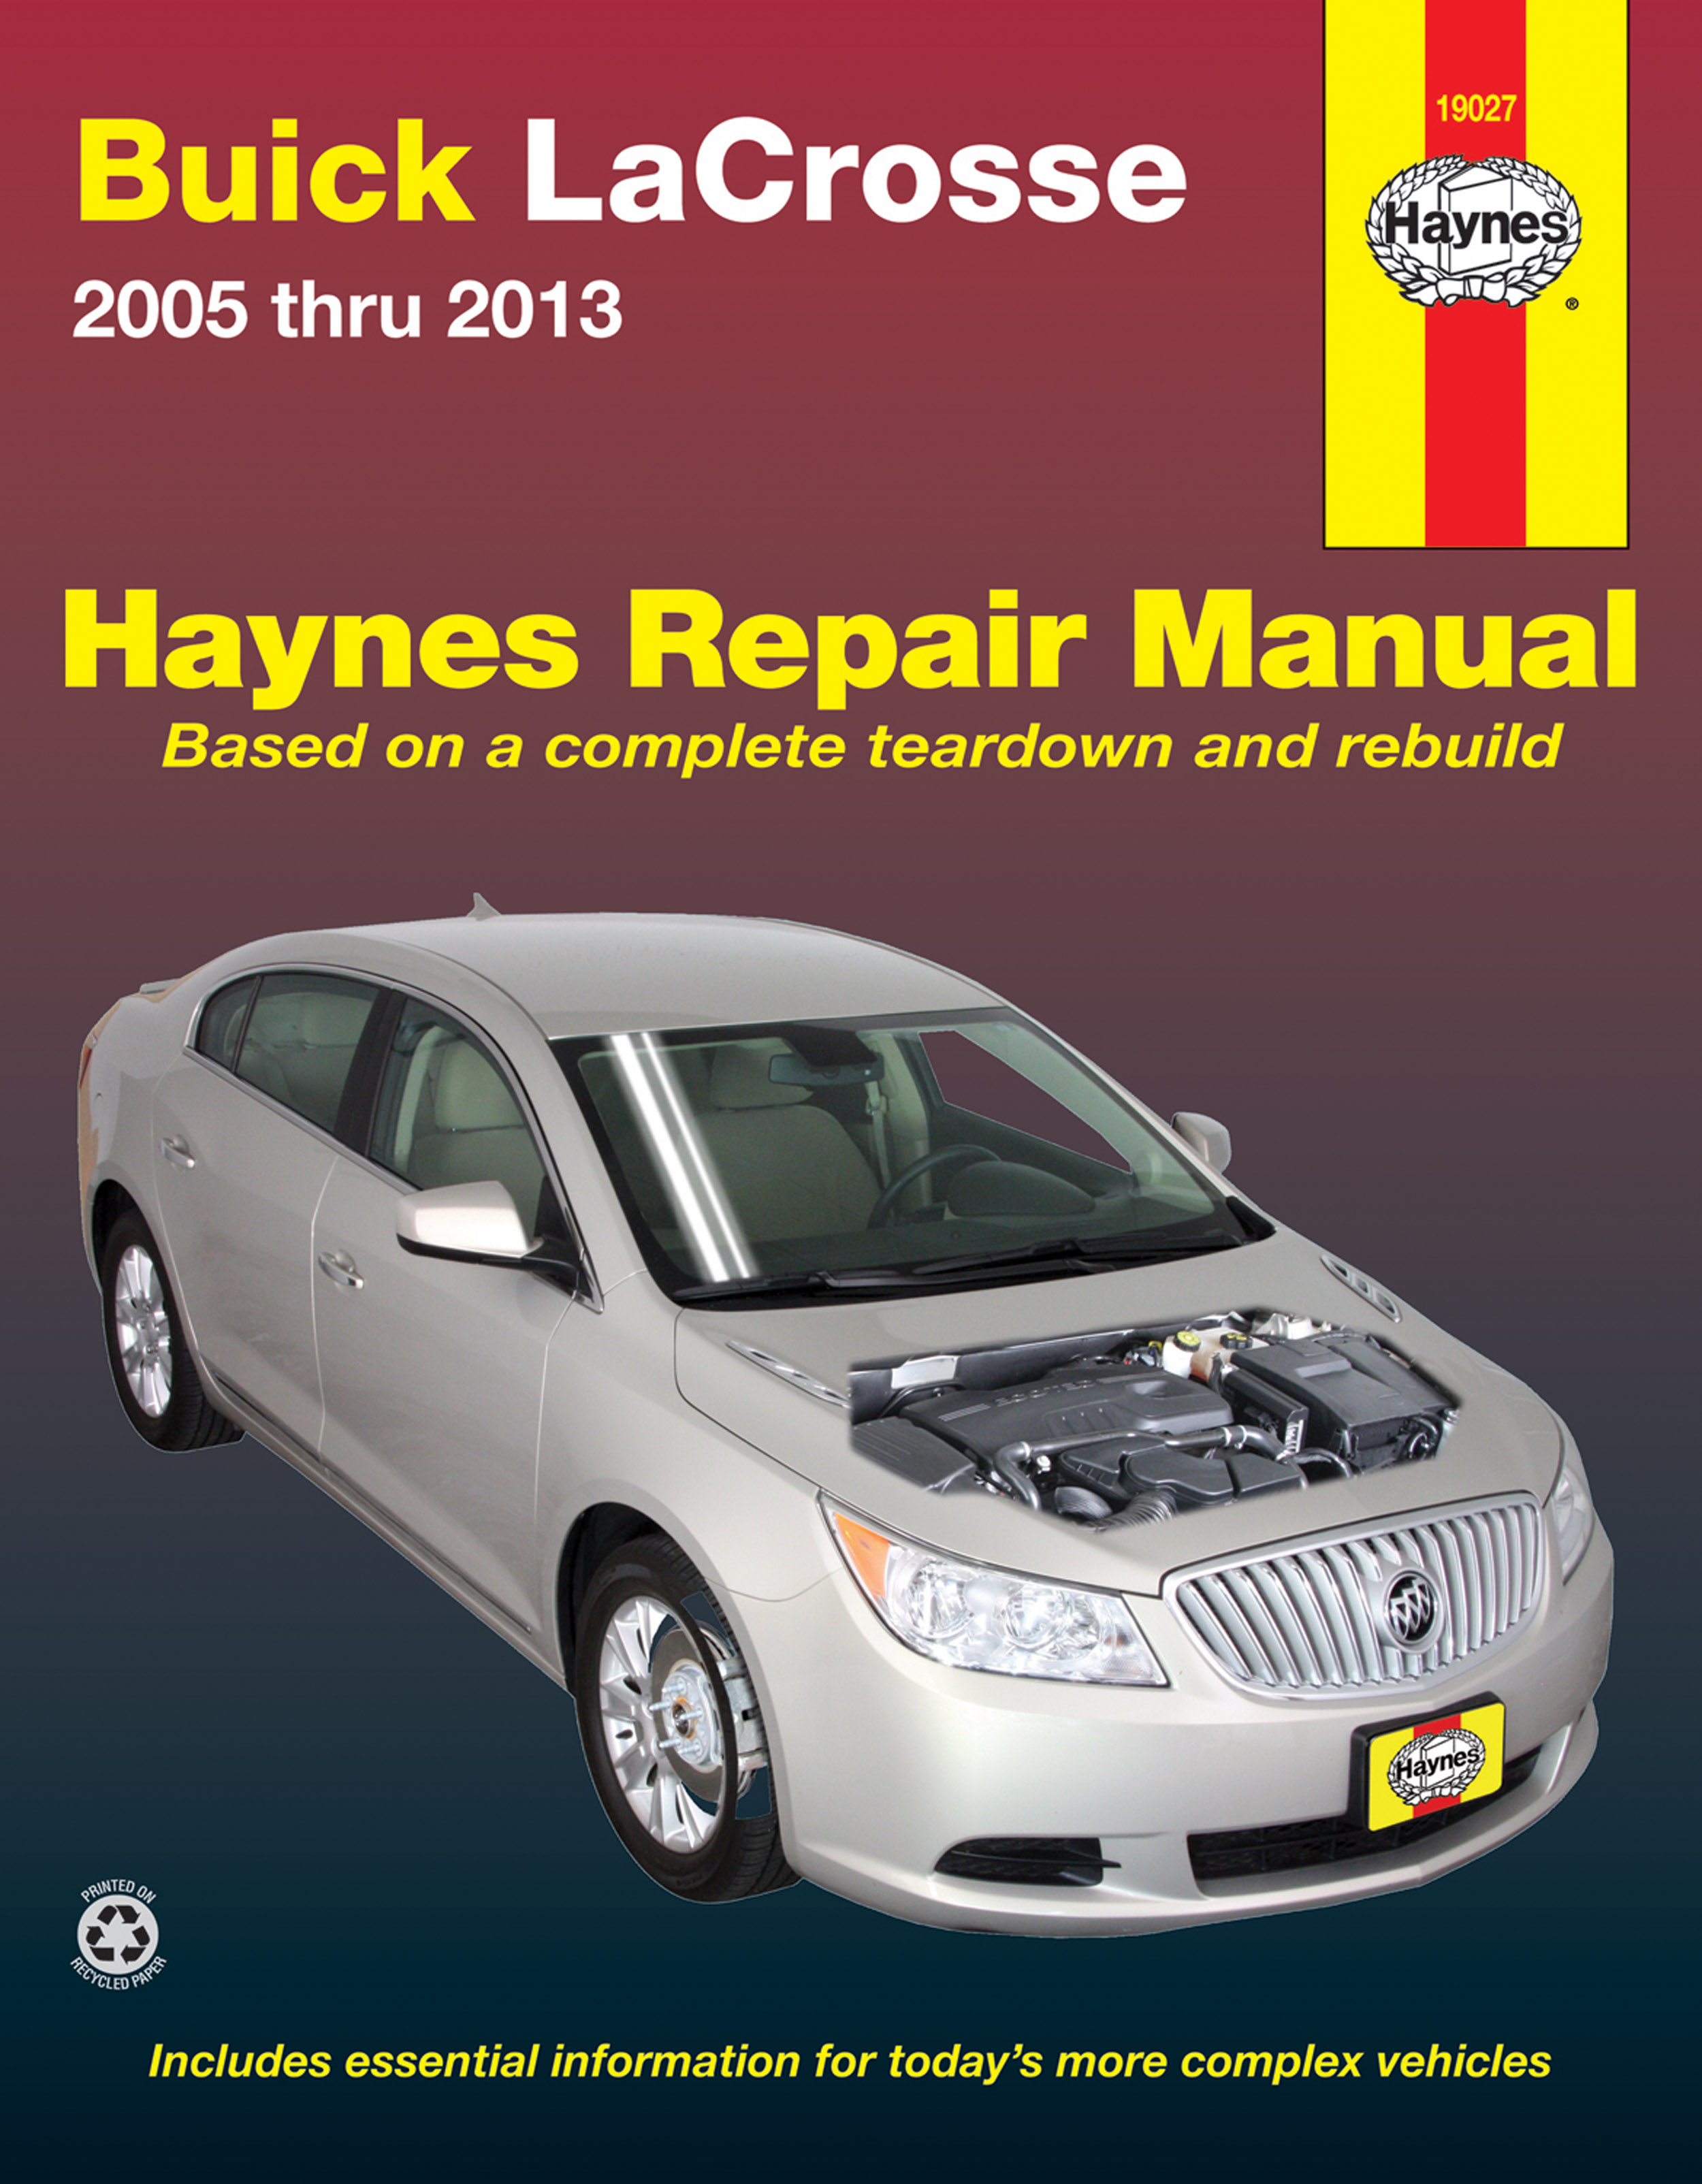 Enlarge Buick LaCrosse (05-13) Haynes Repair Manual